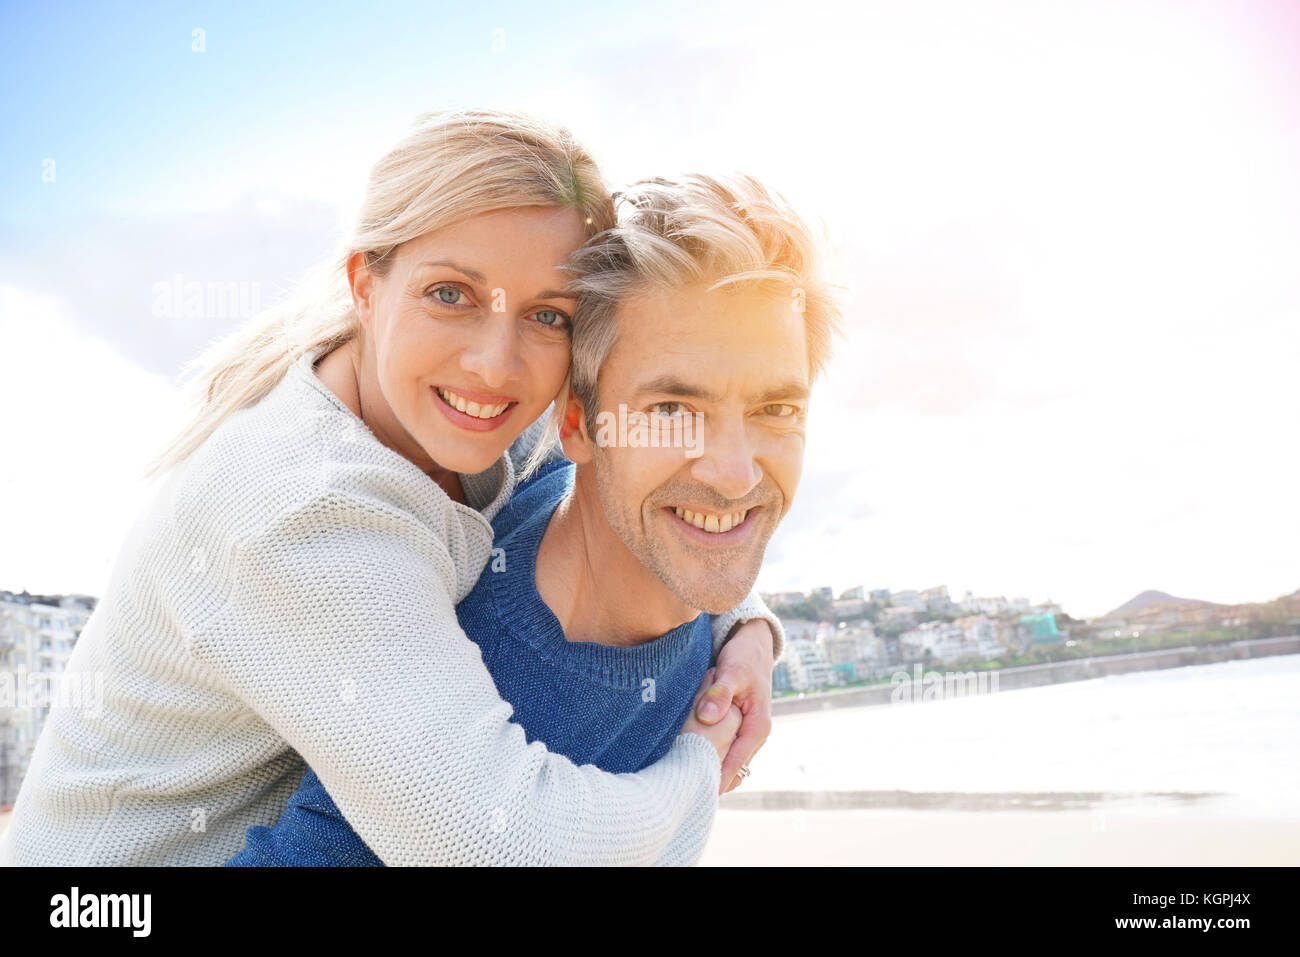 Man giving piggyback ride to woman at the beach - Stock Image